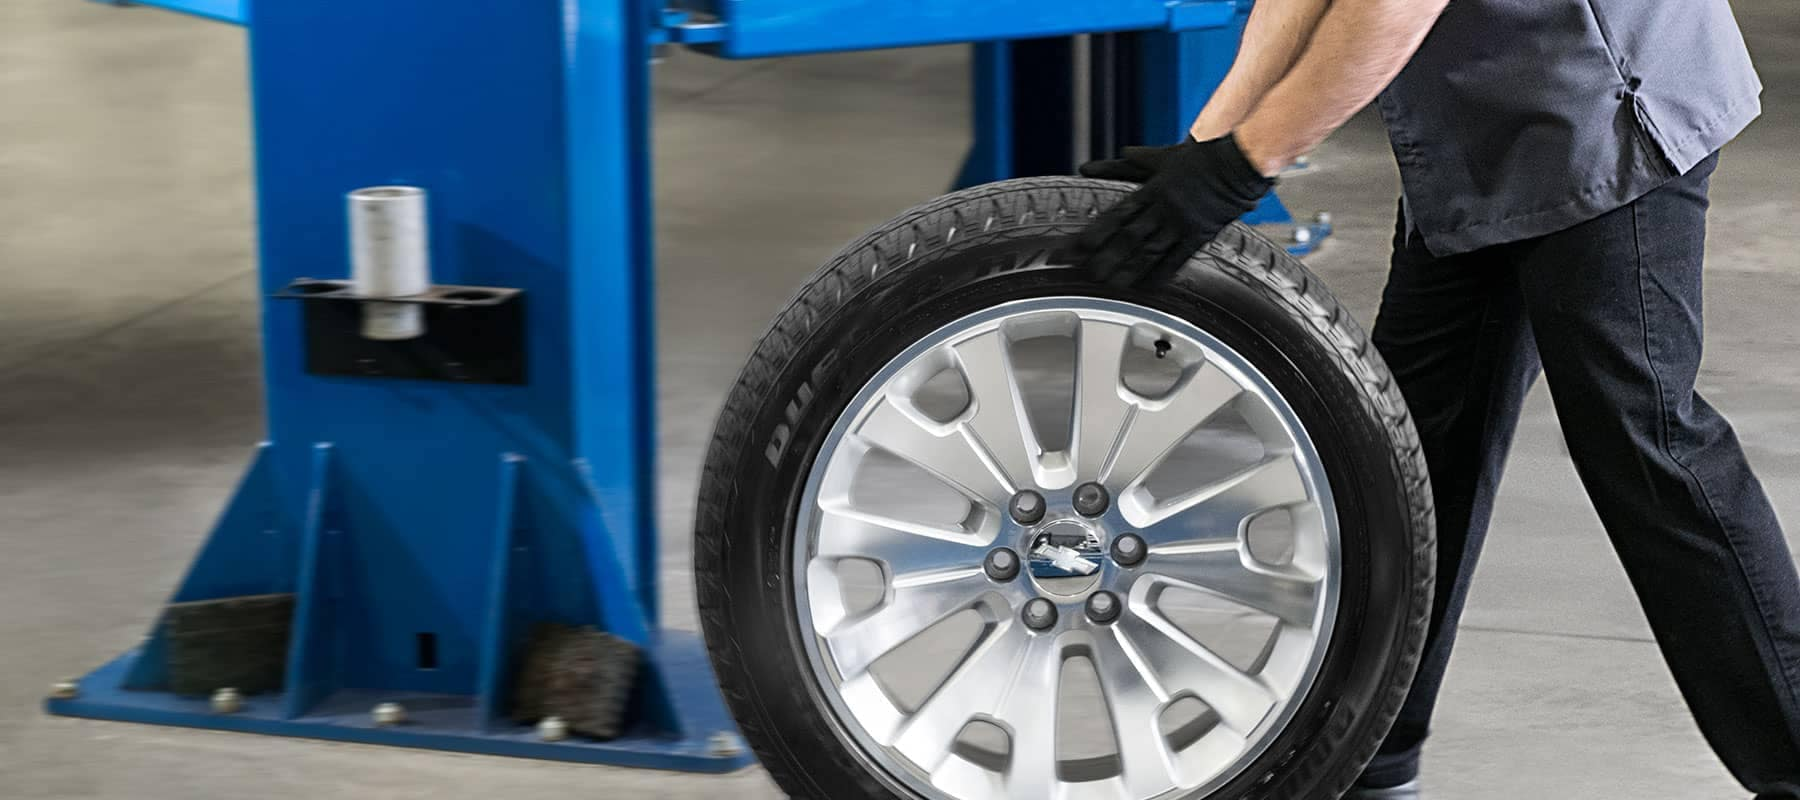 GM service rolling tire